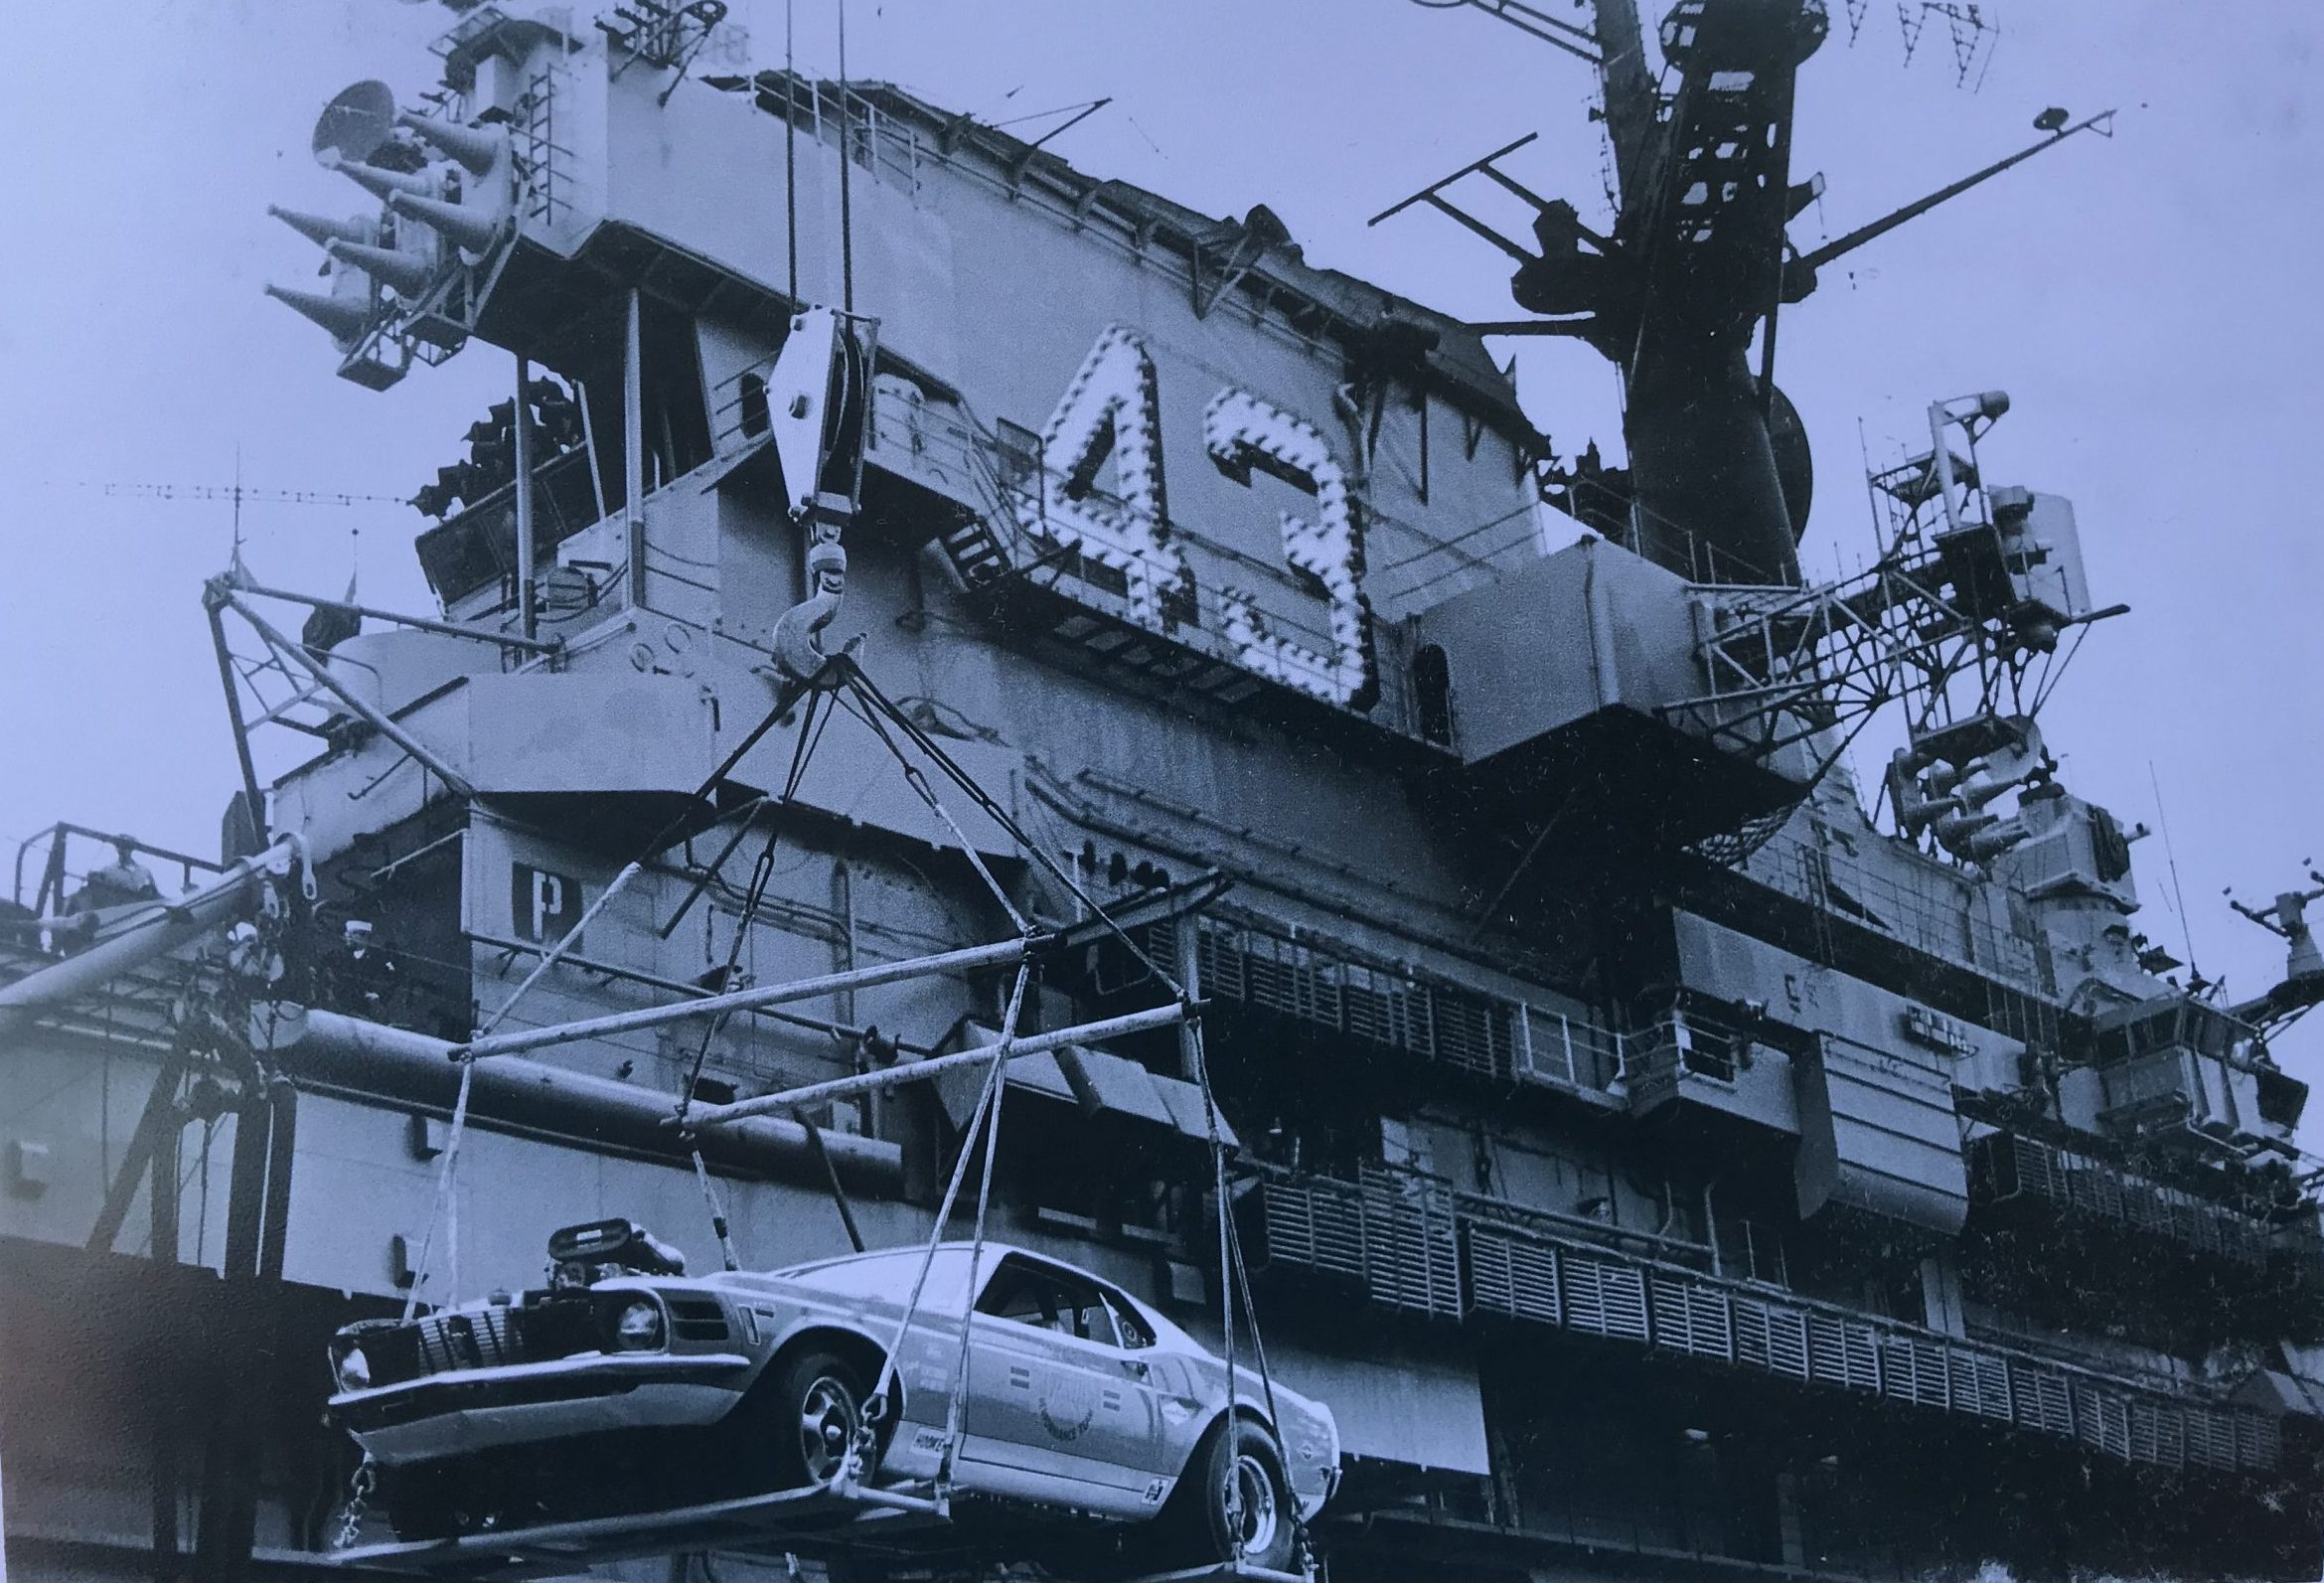 Lawman Boss 429 Ford Mustang historical unloading from ship carrier crane